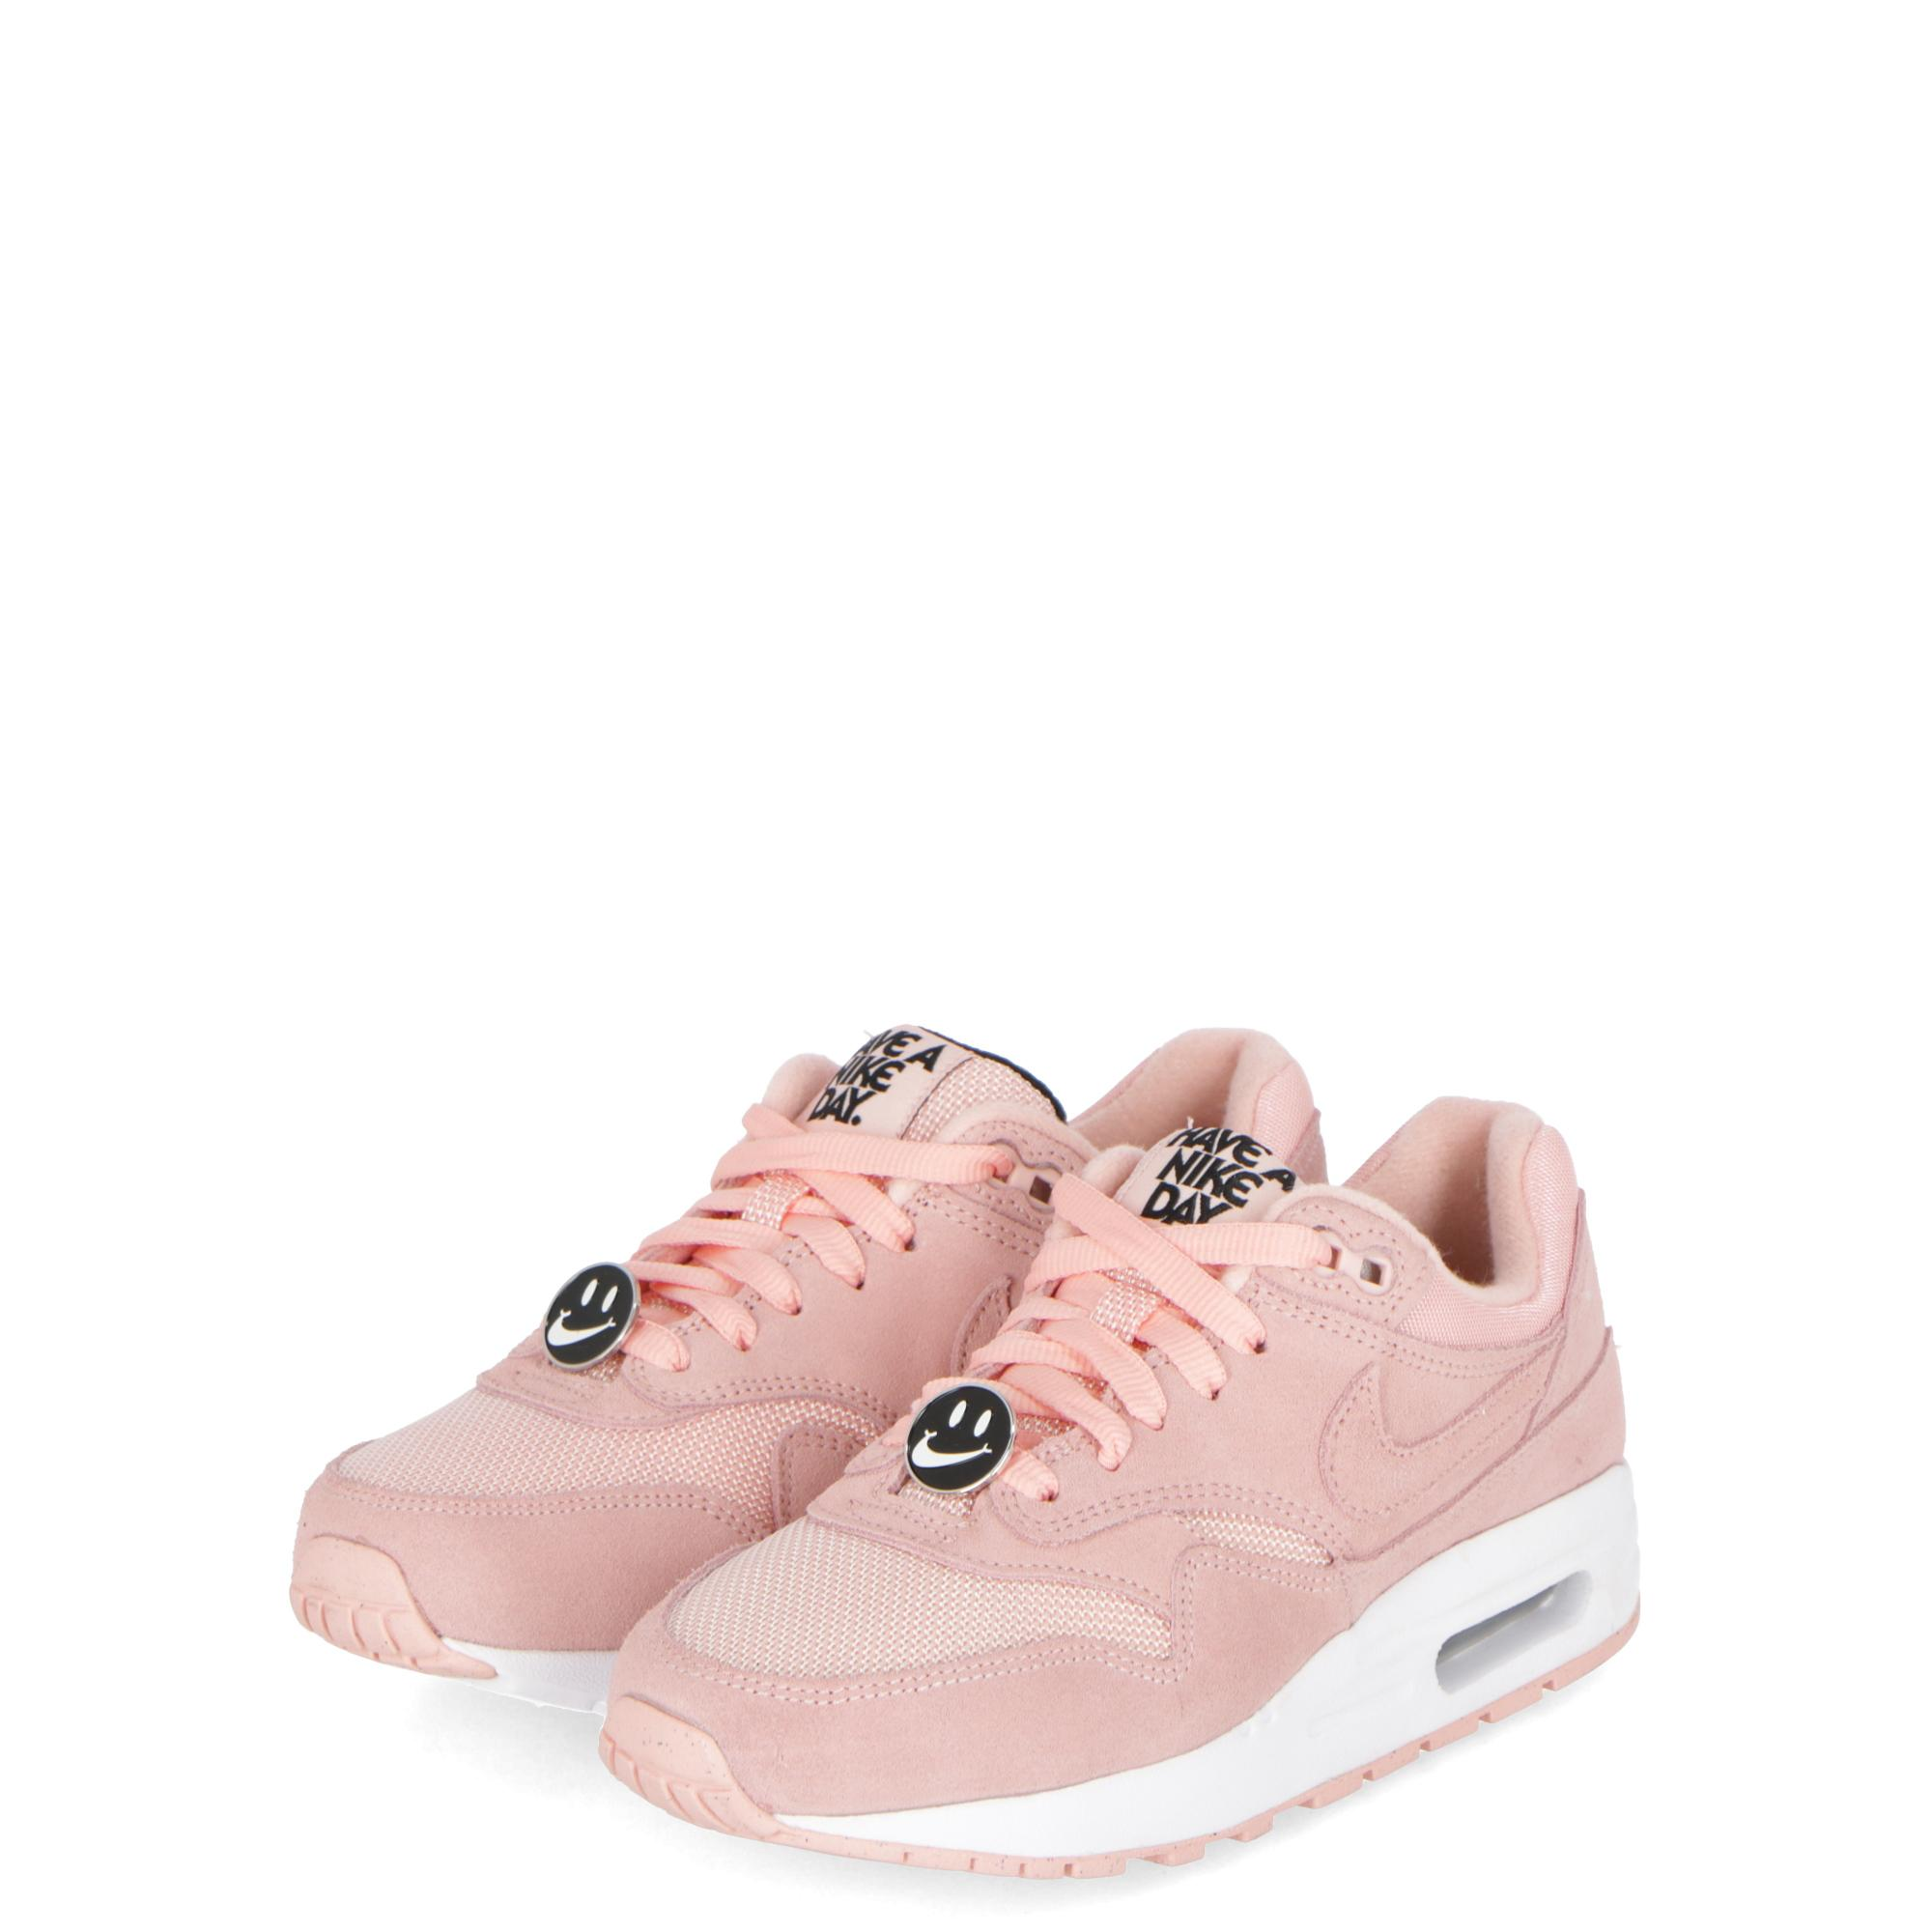 buy online 1a973 c05c5 Nike Air Max 1 Nike Day (gs) - Kids Bleached coral